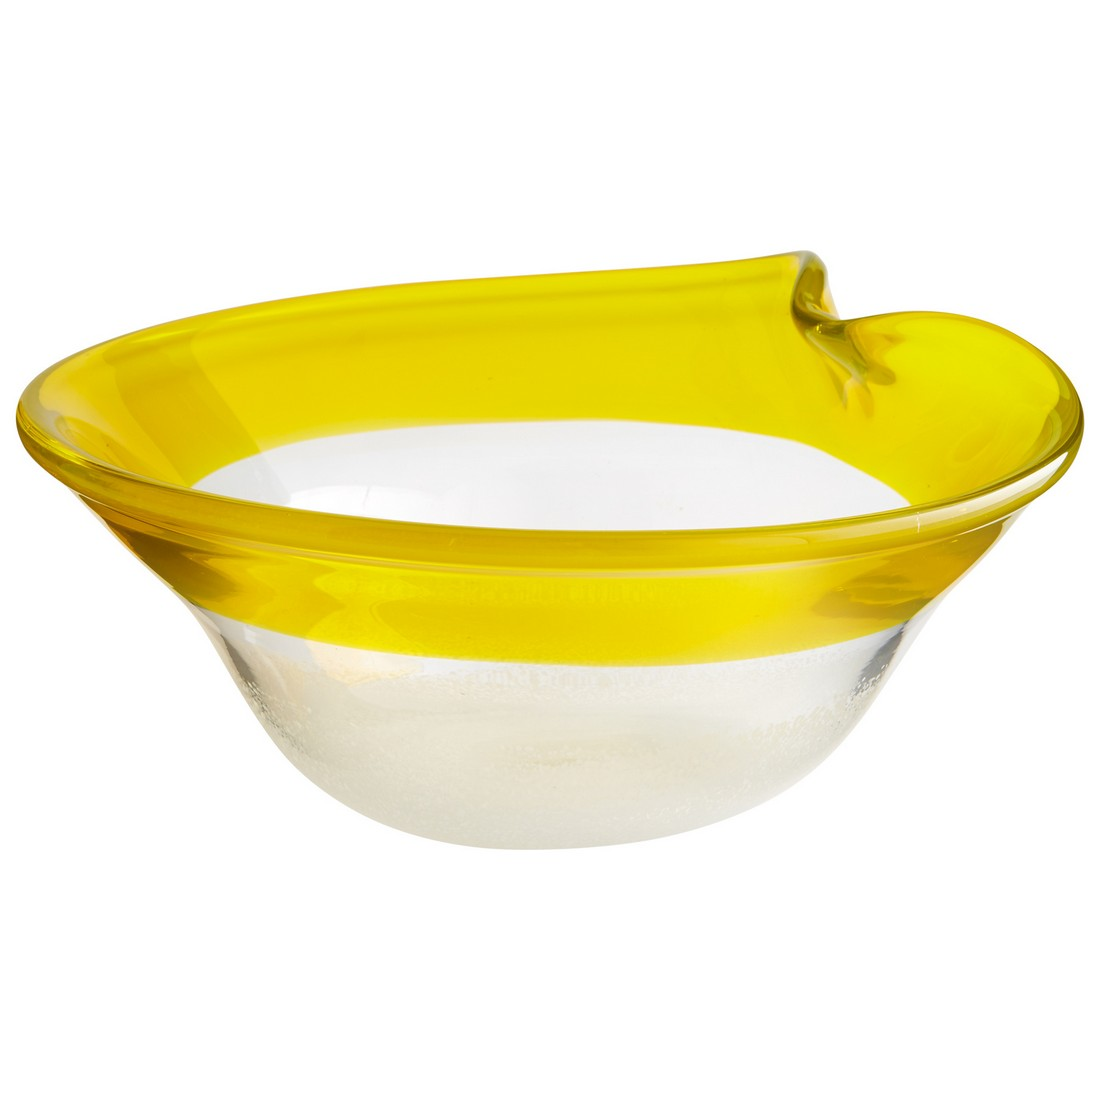 Cyan Design Saturna 13.5 Glass Bowl in Yellow/Clear